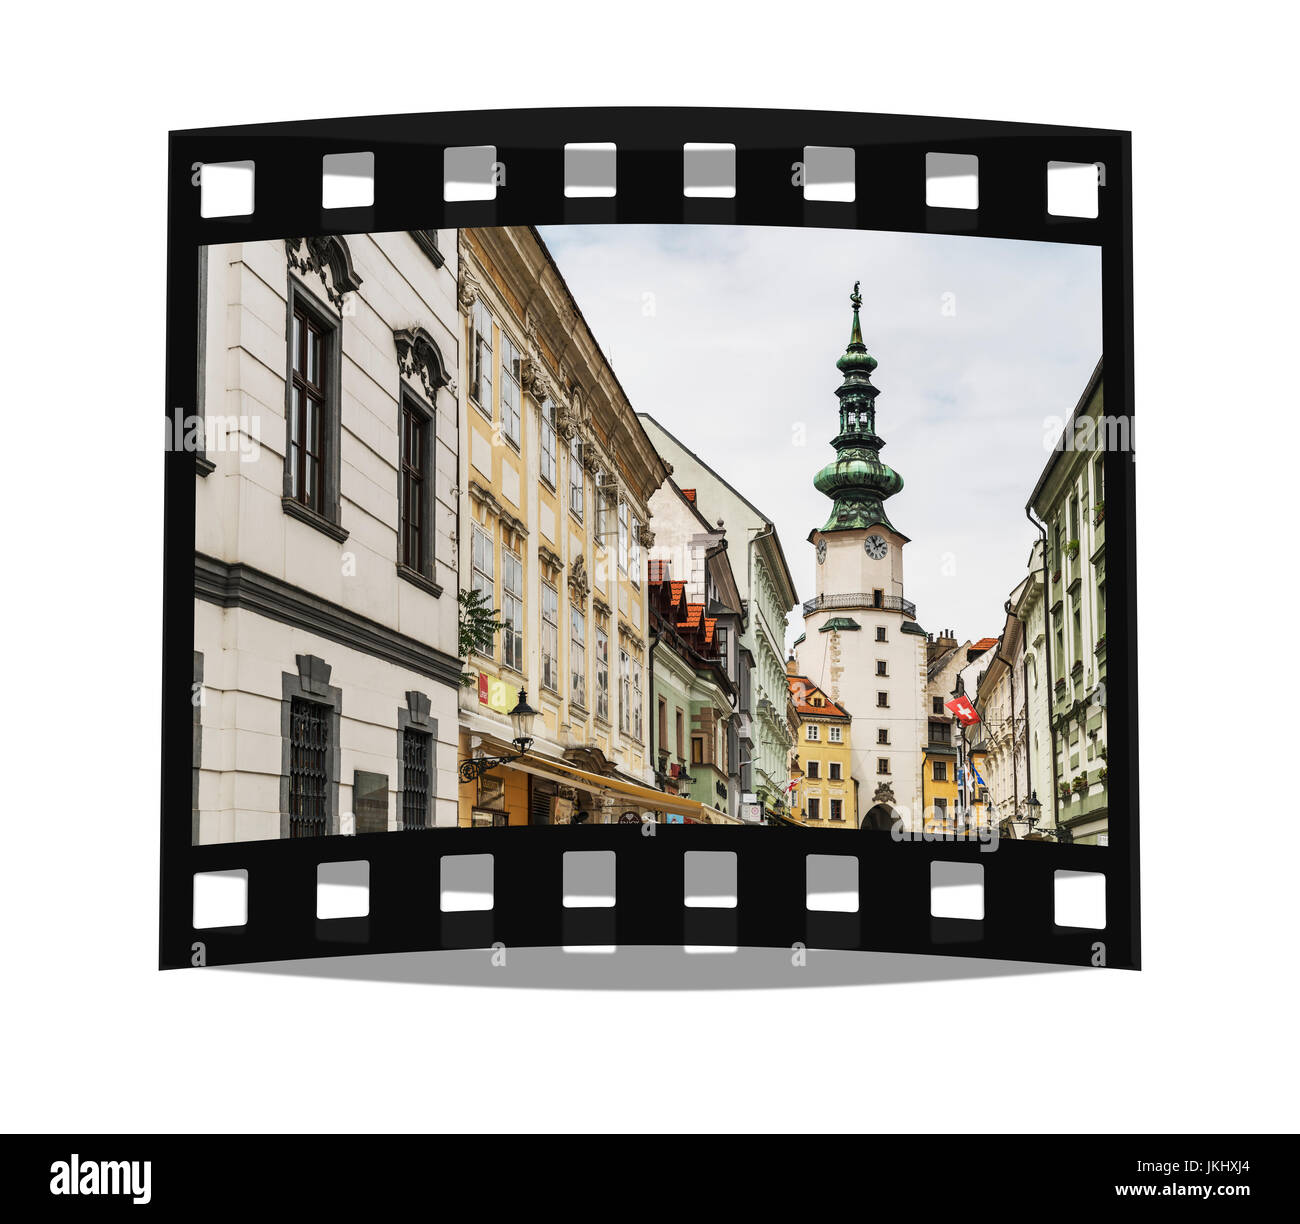 Michaels Gate is the only city gate preserved of the medieval fortifications of Bratislava and is one of the oldest - Stock Image